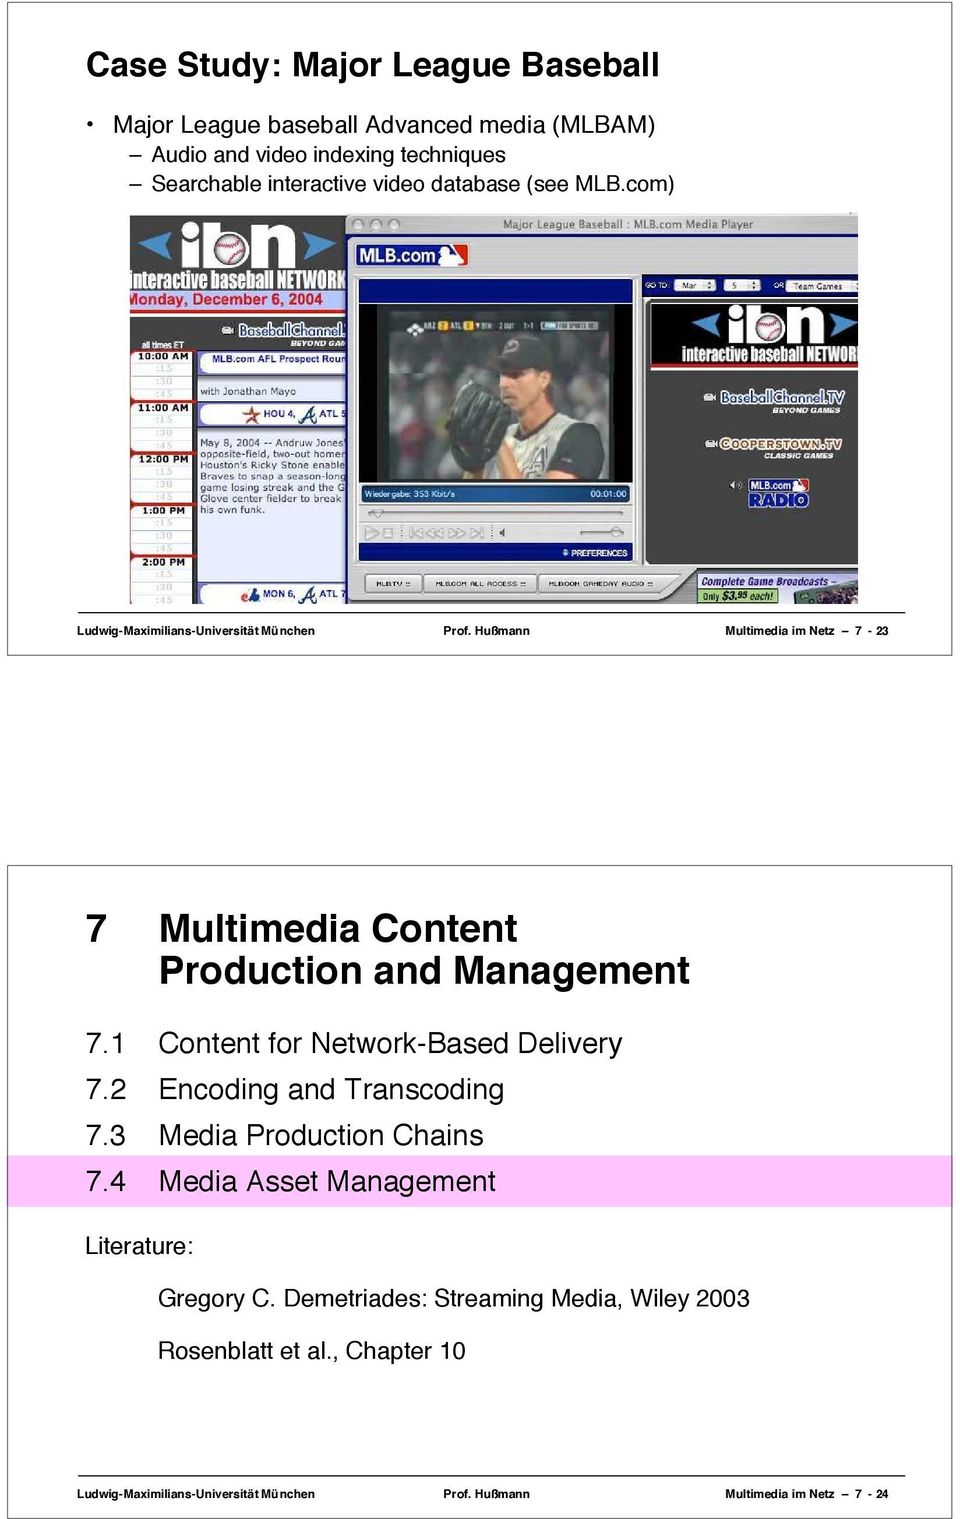 Hußmann Multimedia im Netz 7-23 7 Multimedia Content Production and Management 7.1 Content for Network-Based Delivery 7.